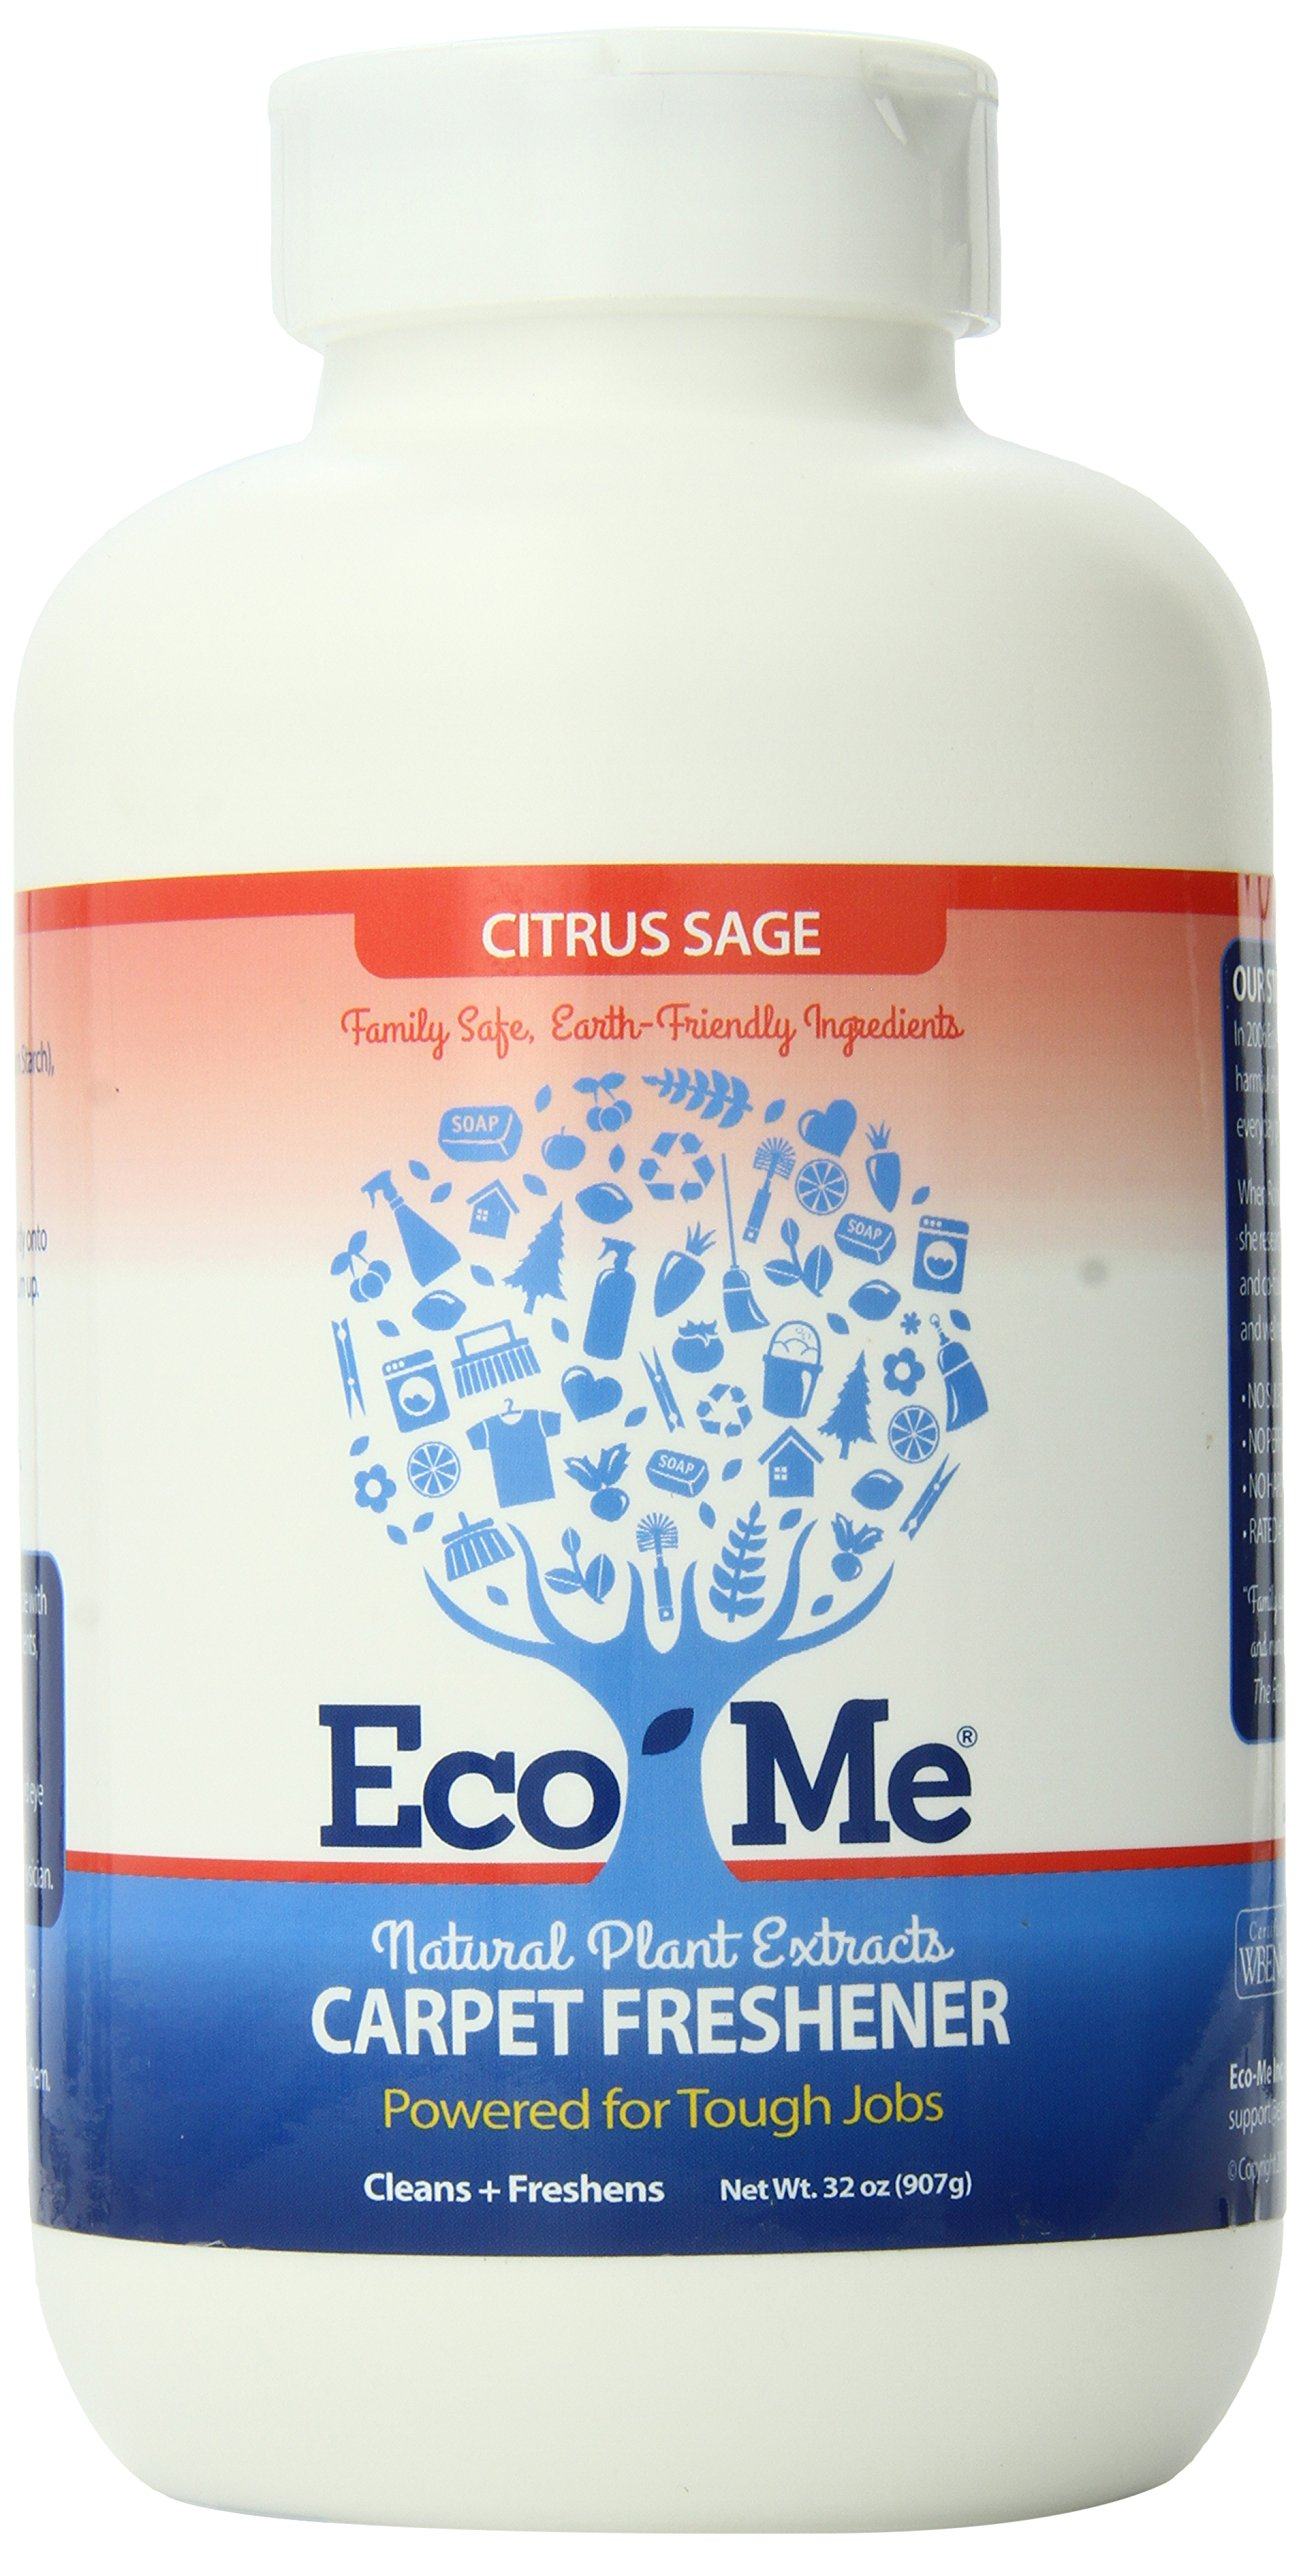 Eco-Me Carpet Freshener, Matt, 32-Ounce Jar